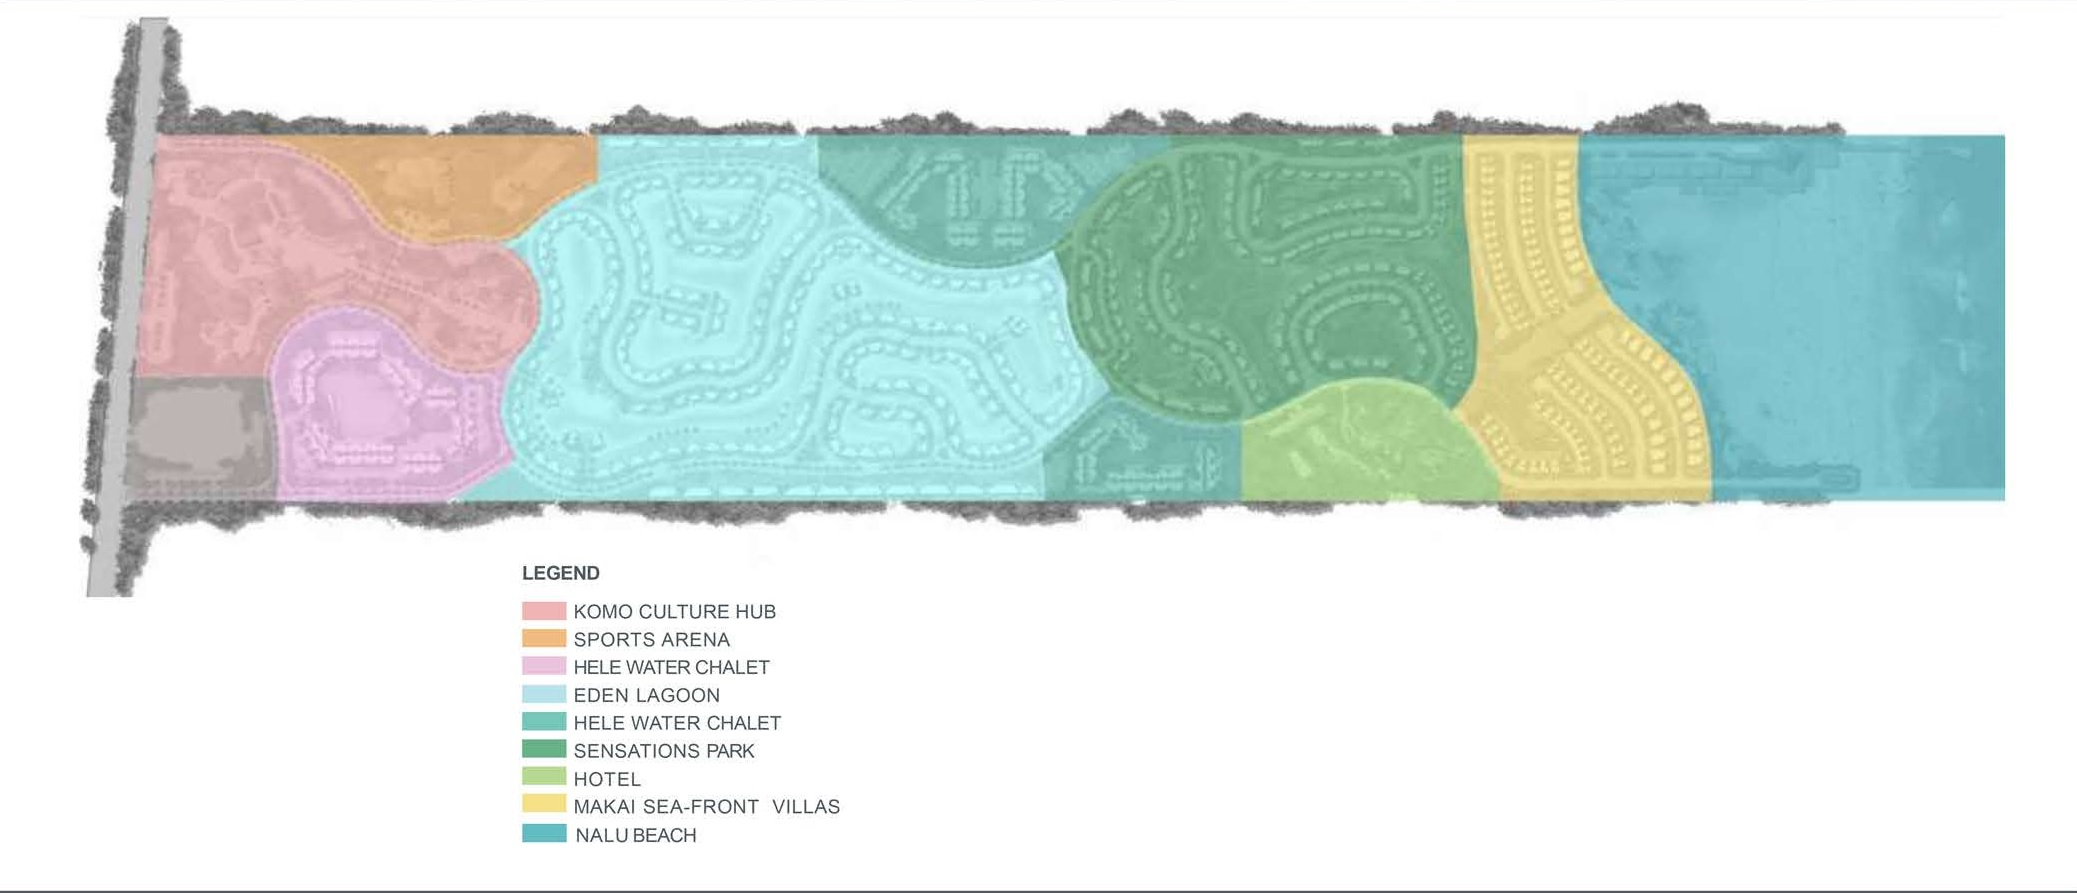 MASTER PLAN NEIGHBORHOODS